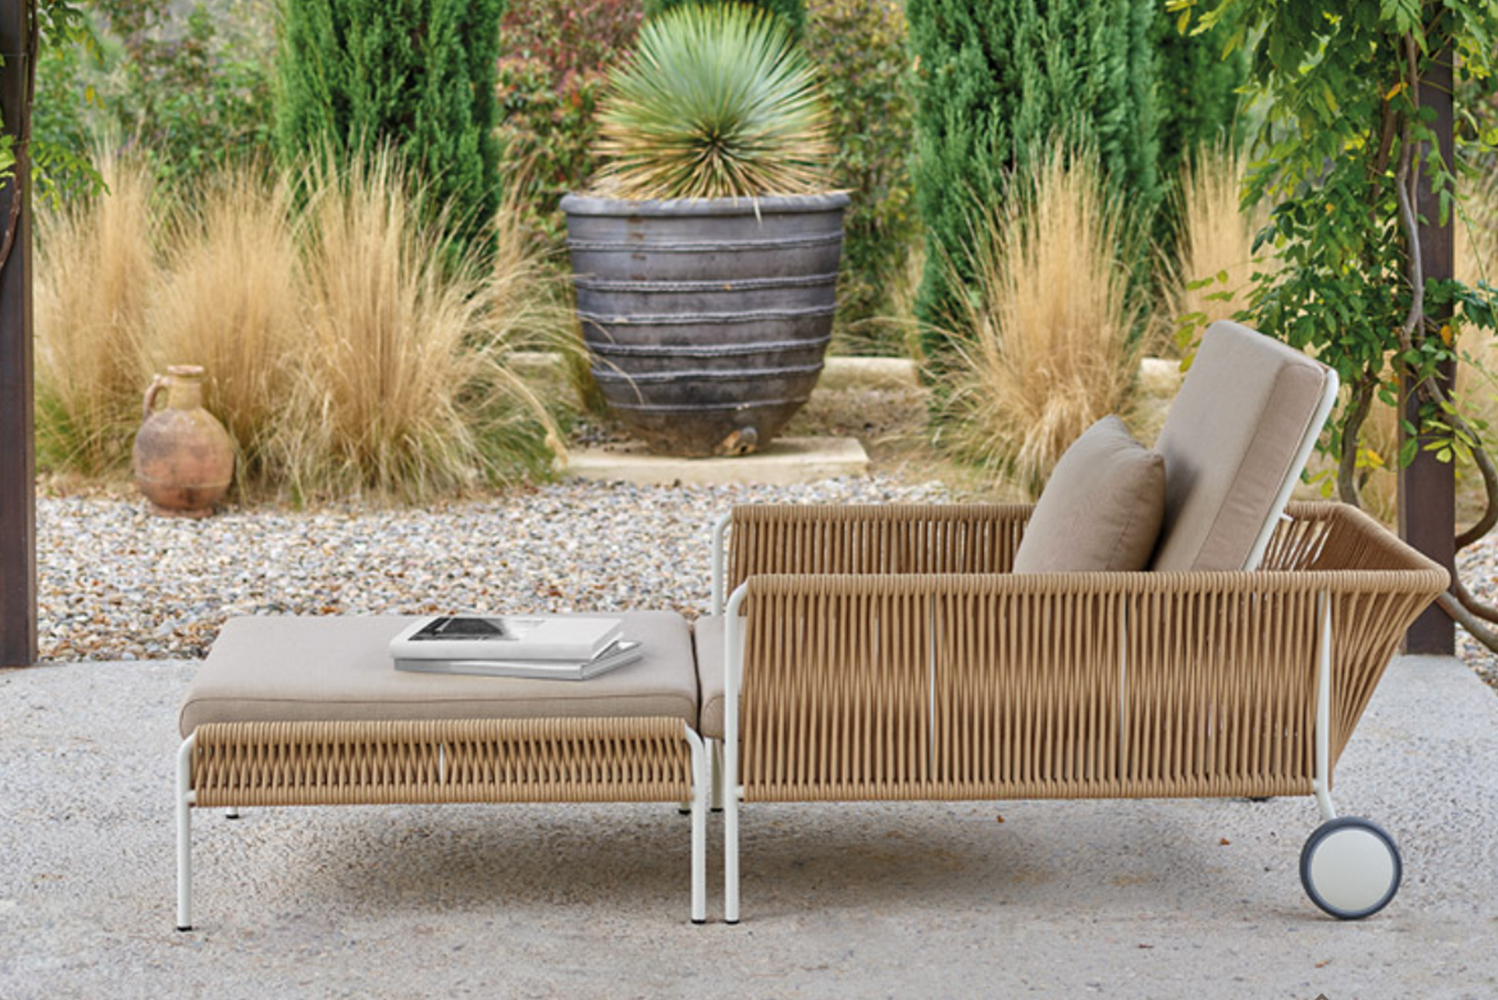 Vincent Martinez used 8mm ropes to achieved a complex design similar to rattan furniture.